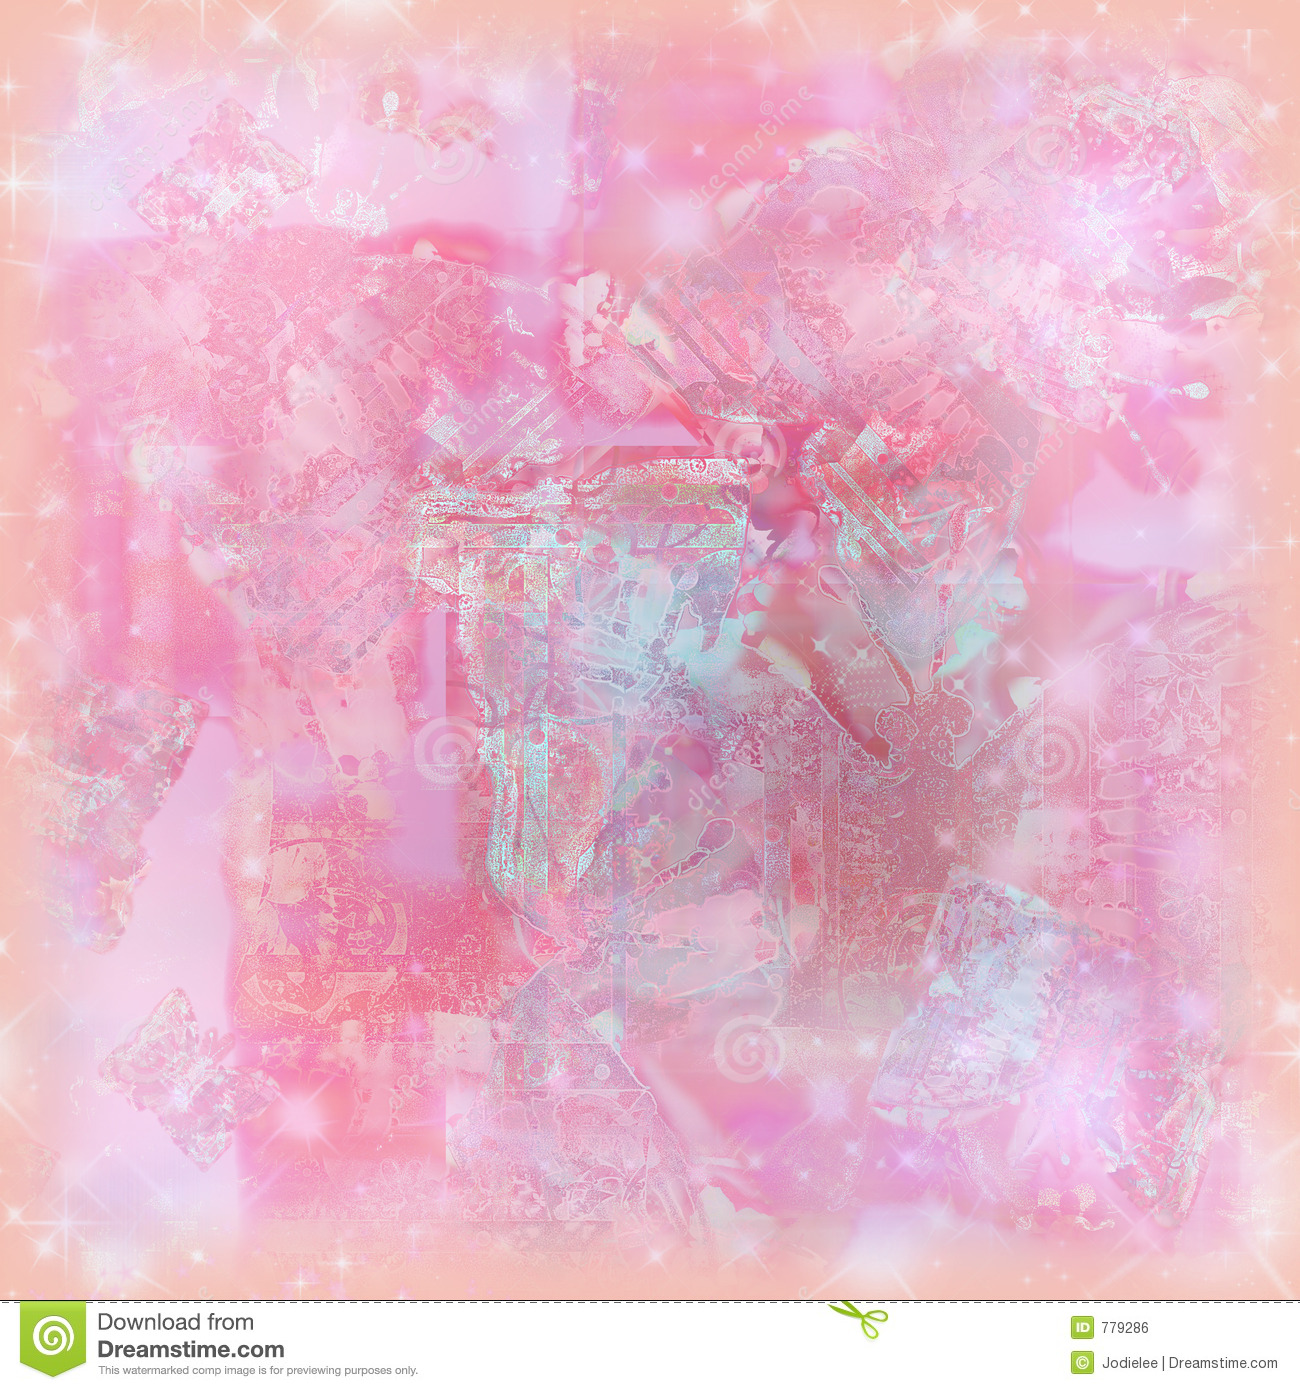 Soft pastel sparkle watercolor background for art and scrapbooking